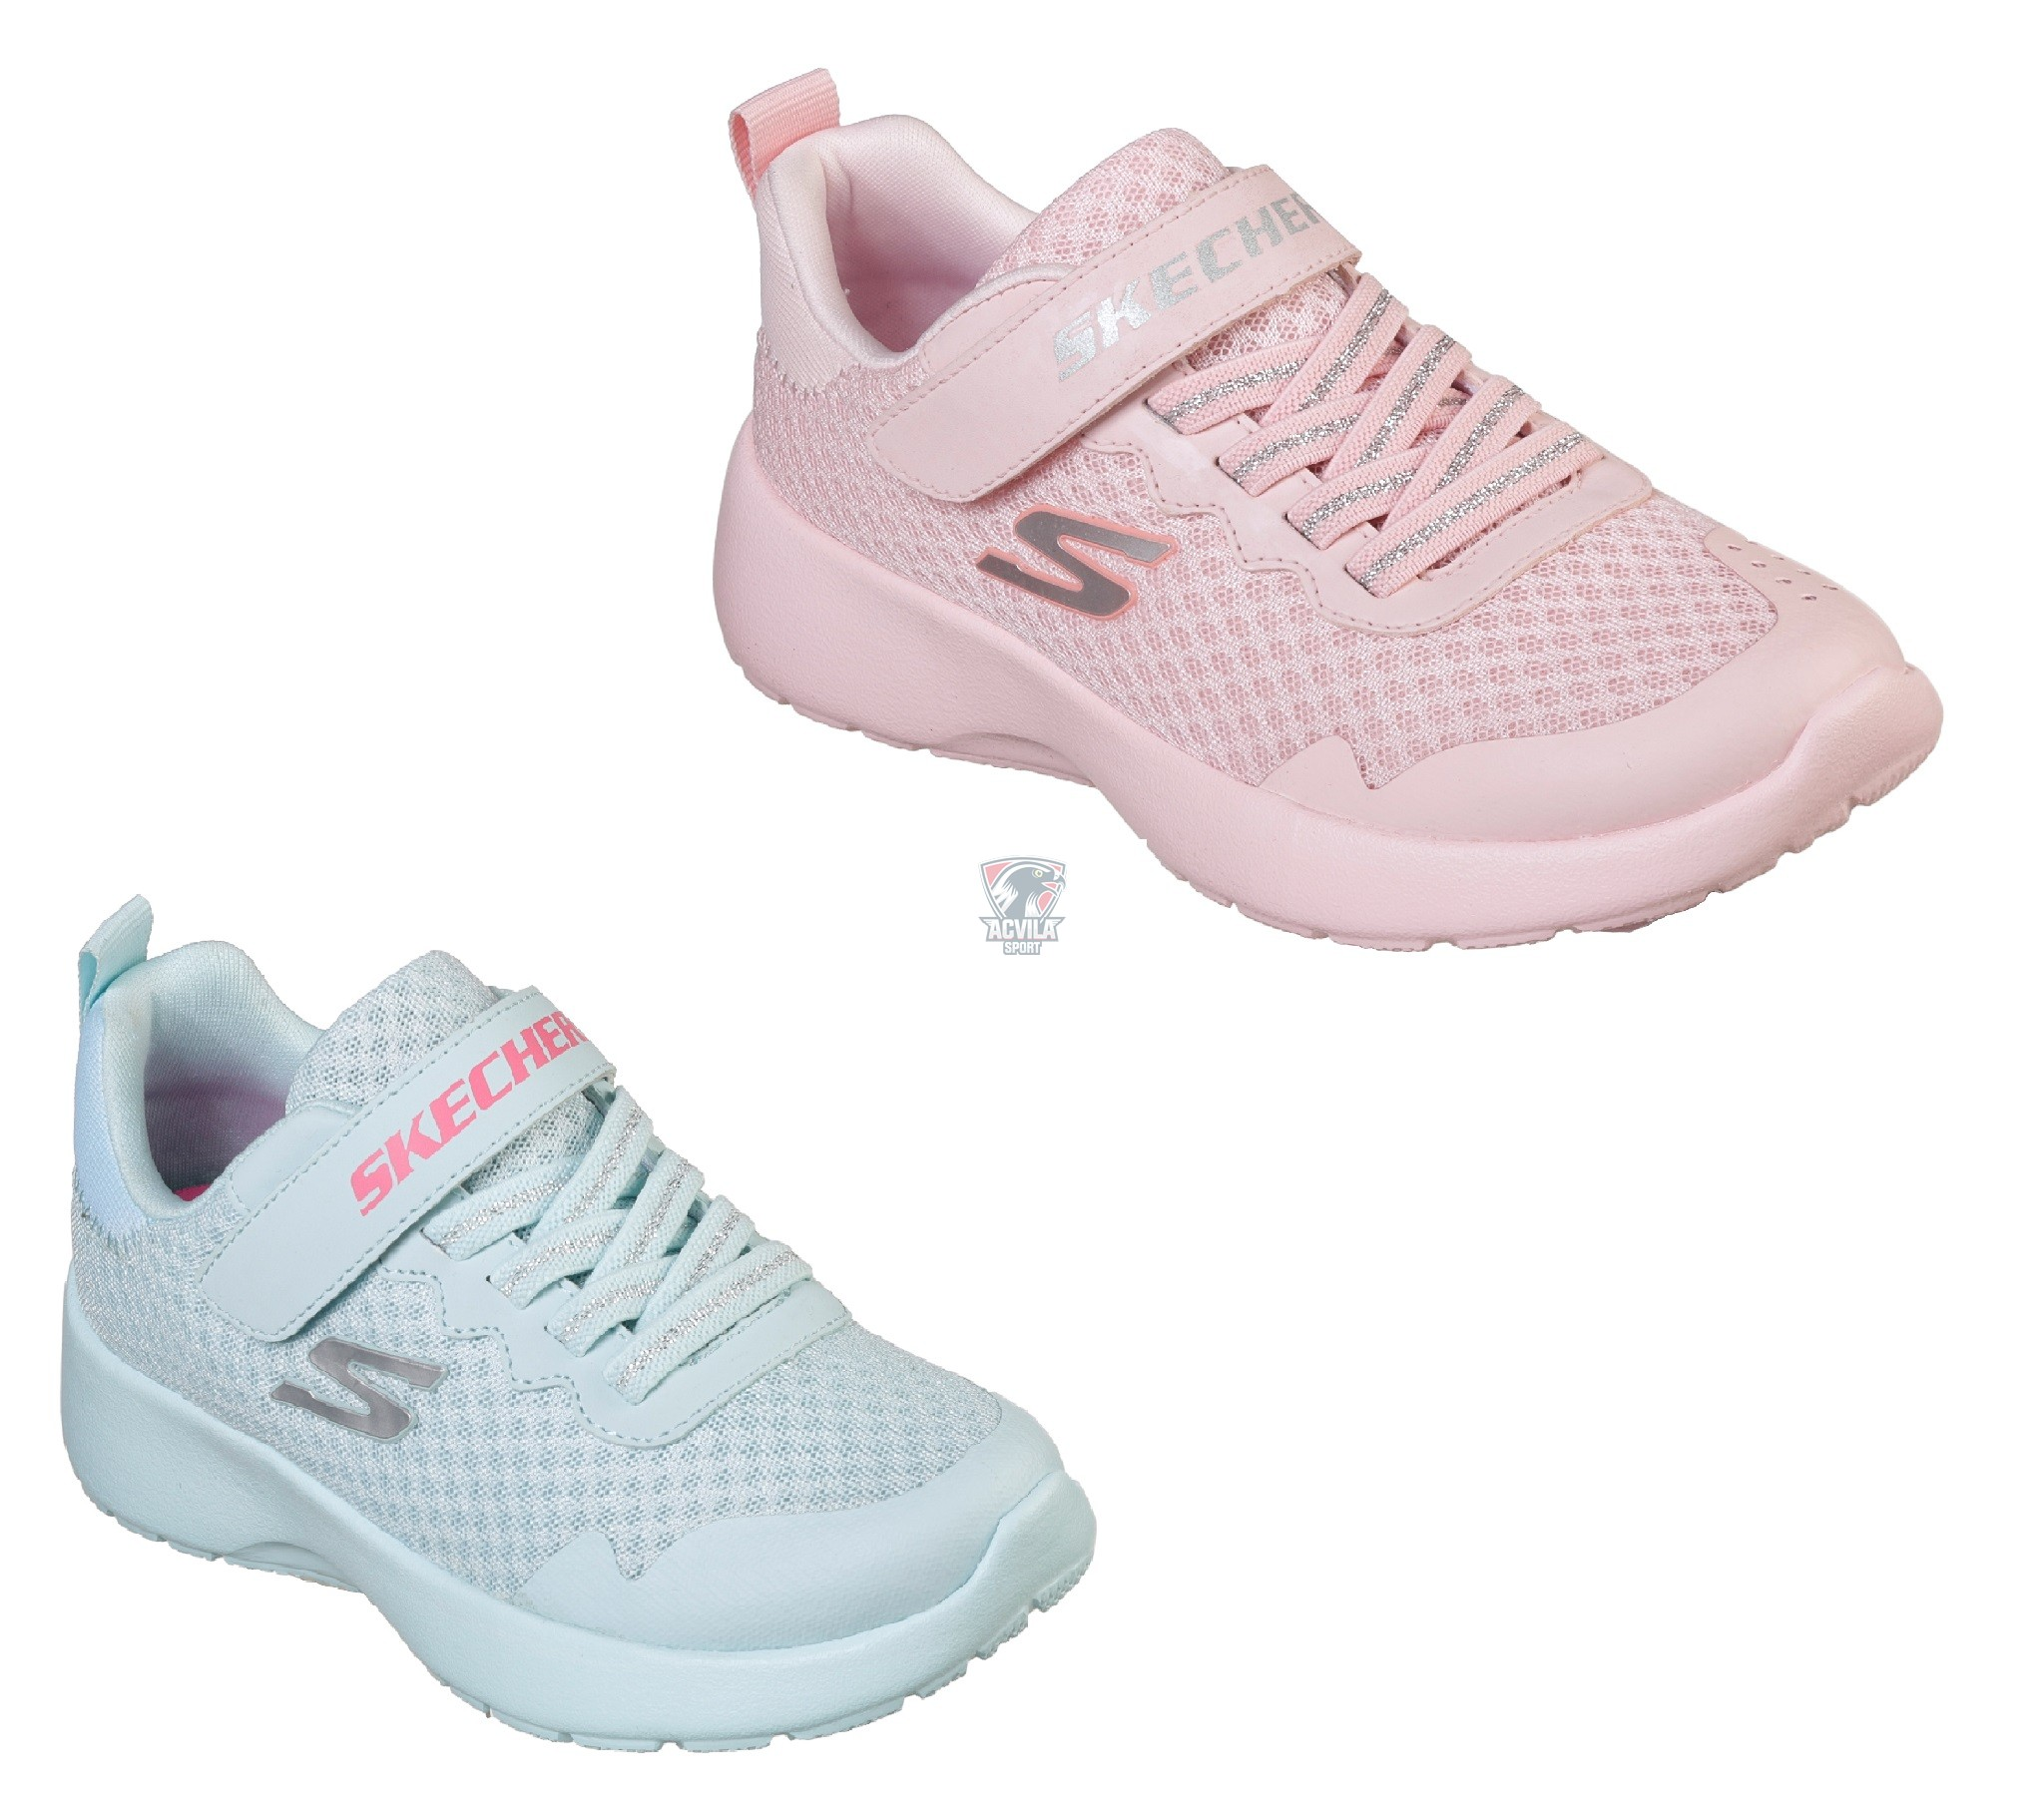 Photo acvilasport - SKECHERS DYNAMIGH T-LEAD RUNNER